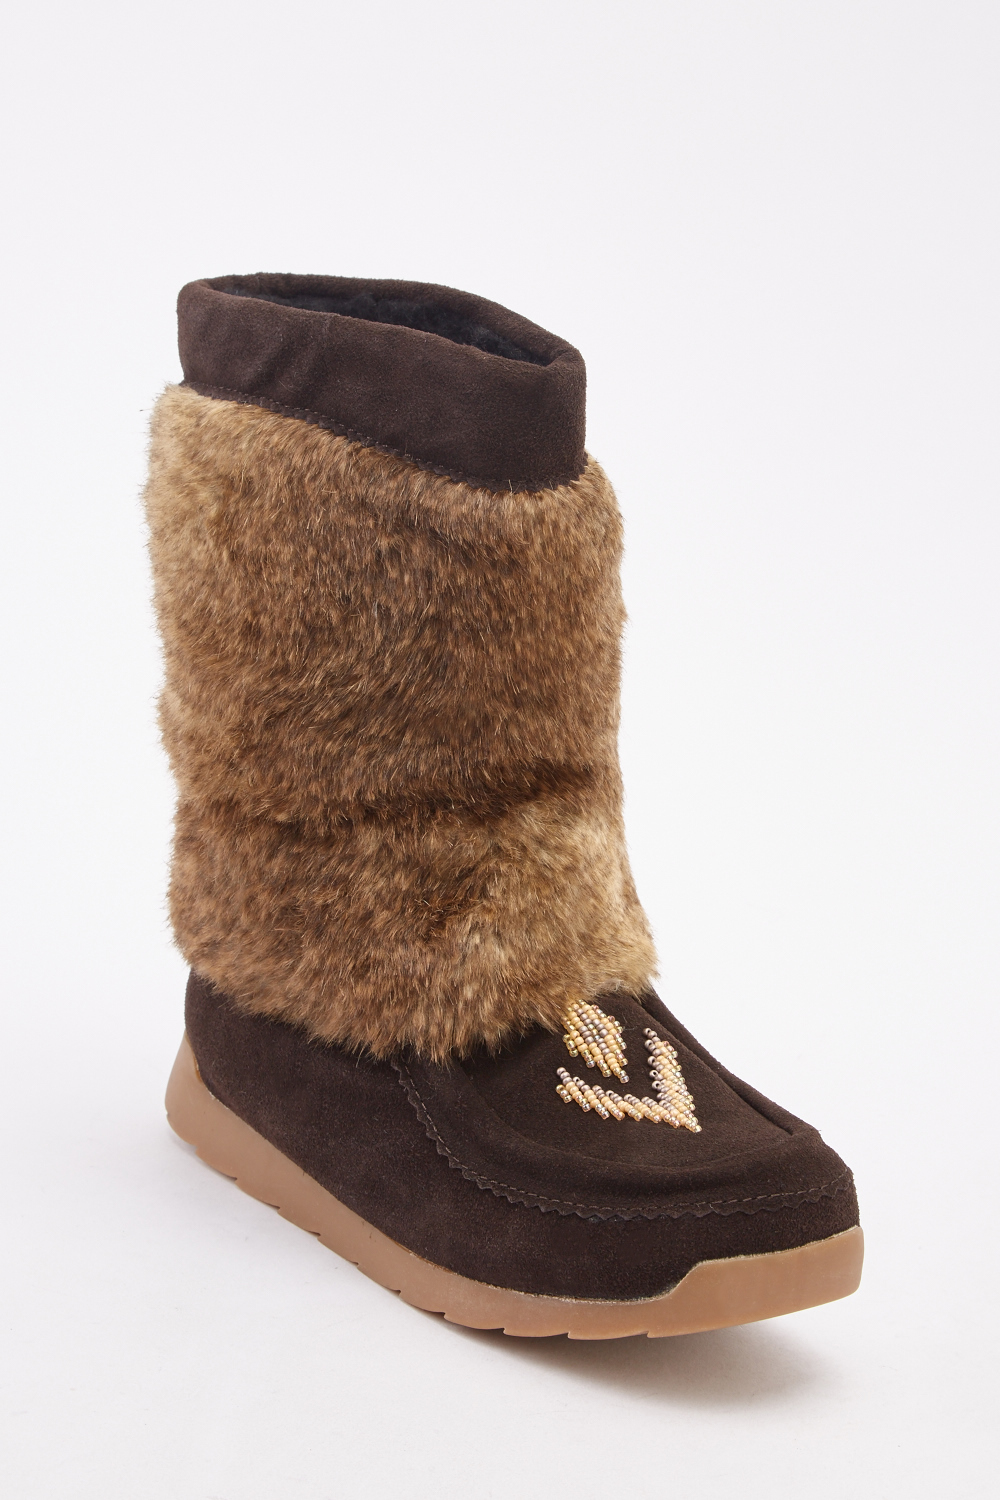 Beaded Front Faux Fur Ankle Boots for only 5 pounds. With teddy bear lincing